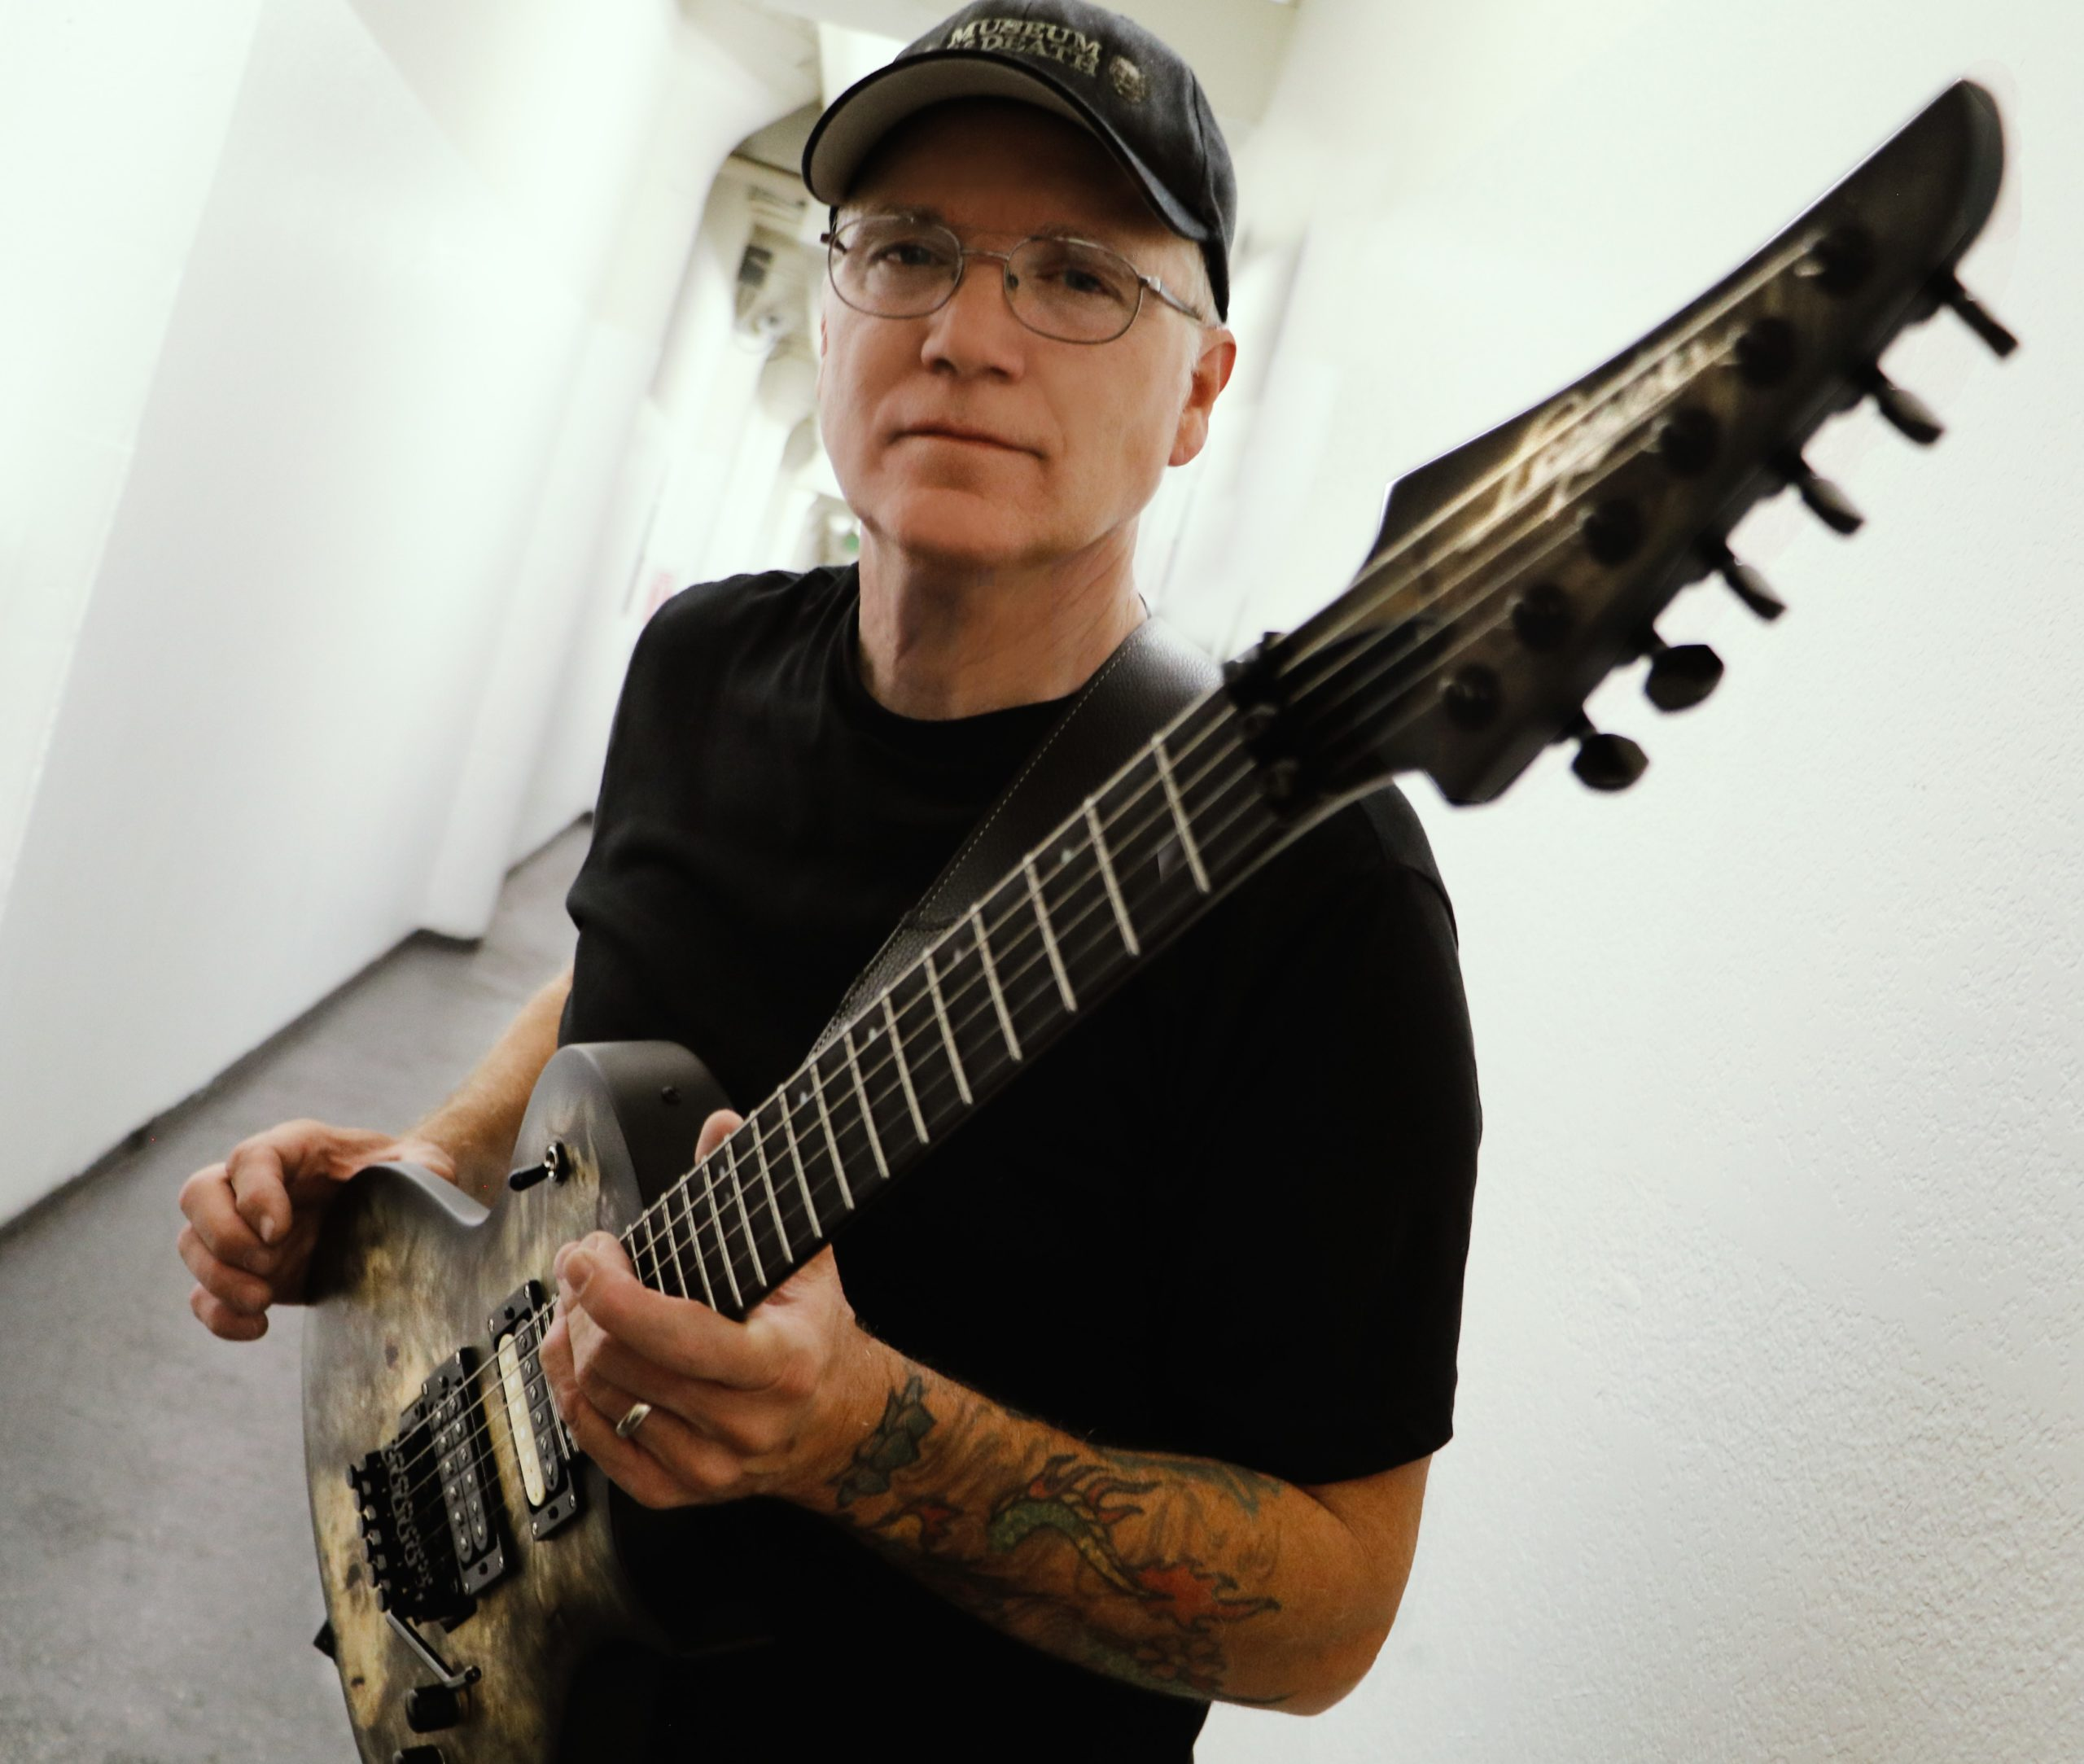 Former Megadeth Guitarist Chris Poland to be inducted & Perform at the 2020 Metal Hall of Fame